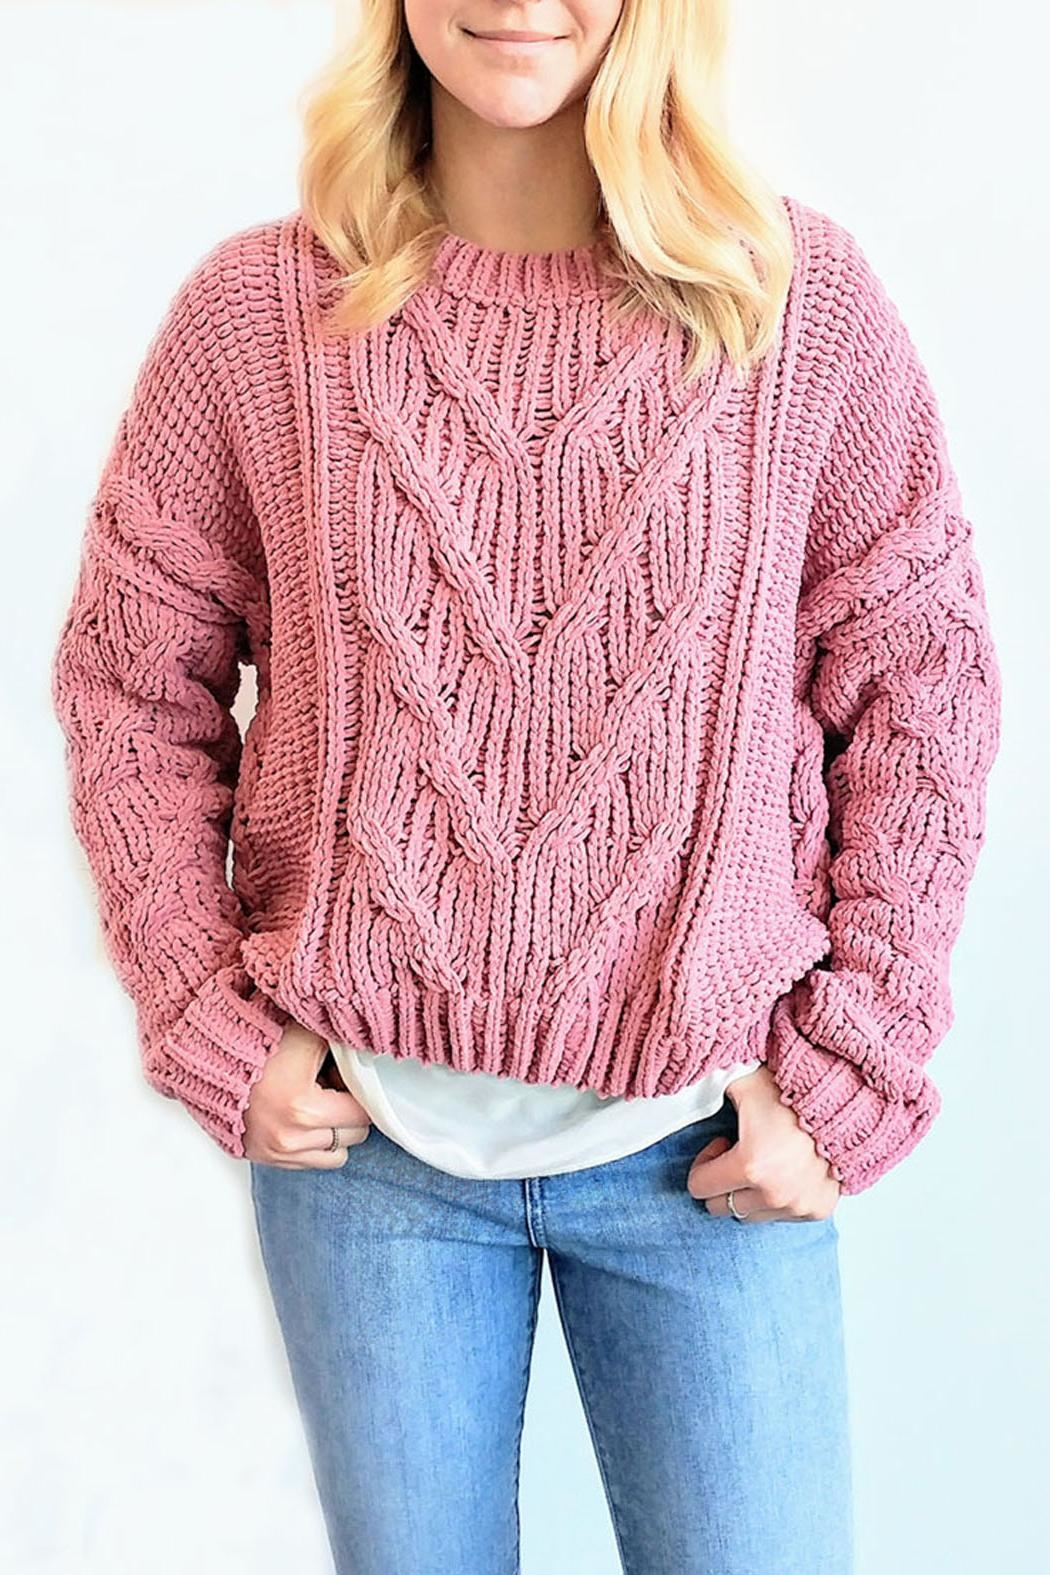 J.O.A. Chunky Cable Sweater - Main Image